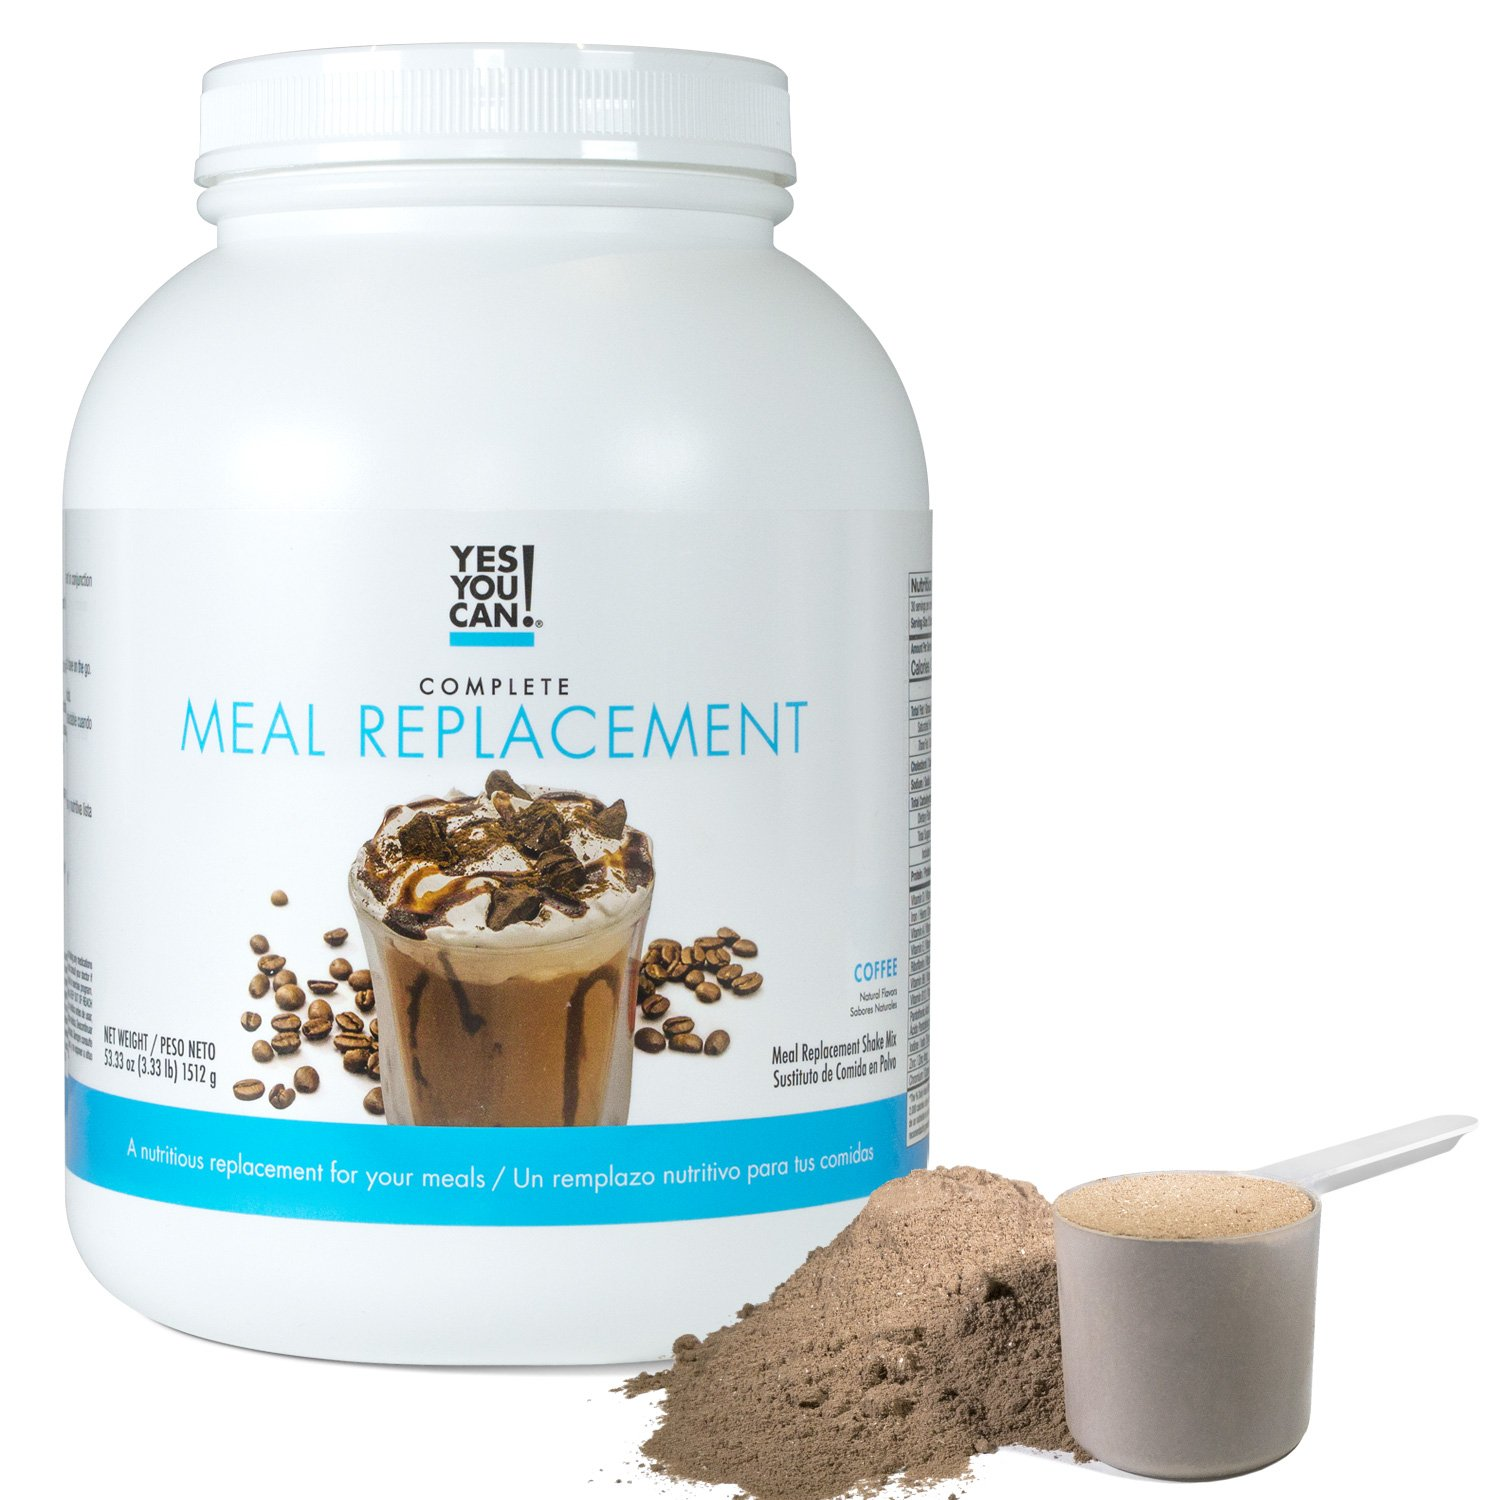 Yes You Can Complete Meal Replacement Up To 2 Meals A Day Helps Lose Weight Sustituto De